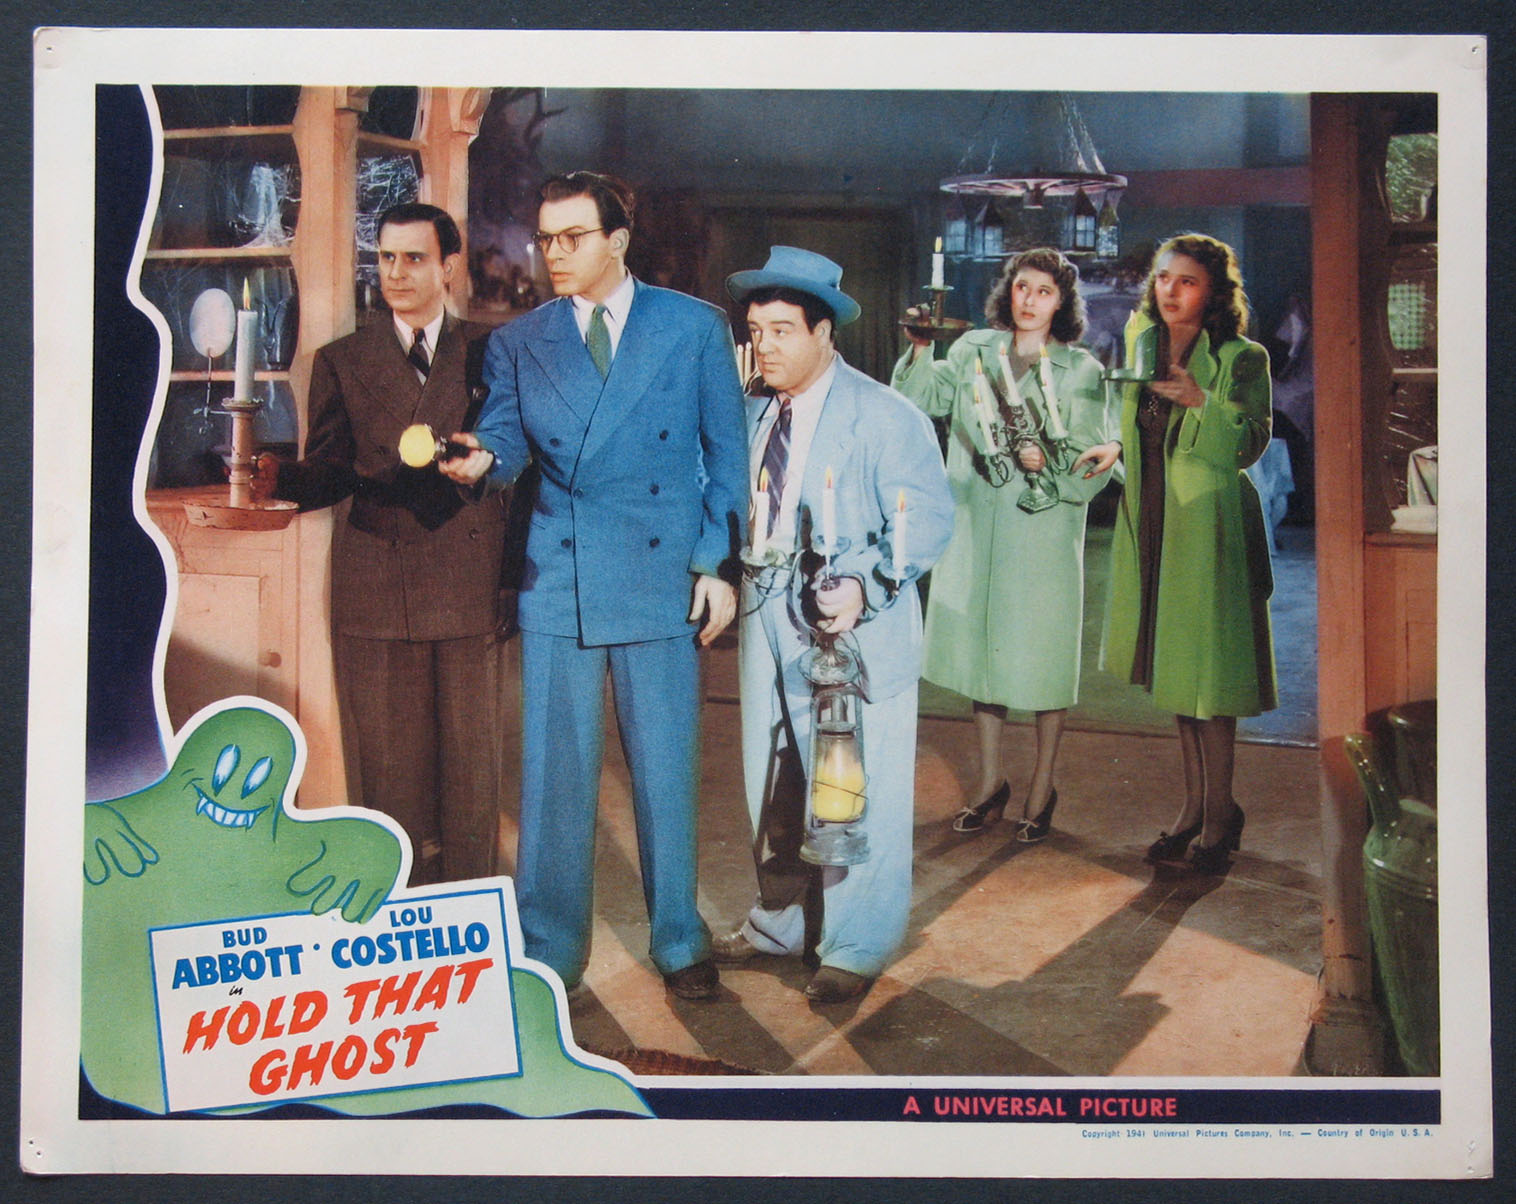 HOLD THAT GHOST (Abbott and Costello) @ FilmPosters.com